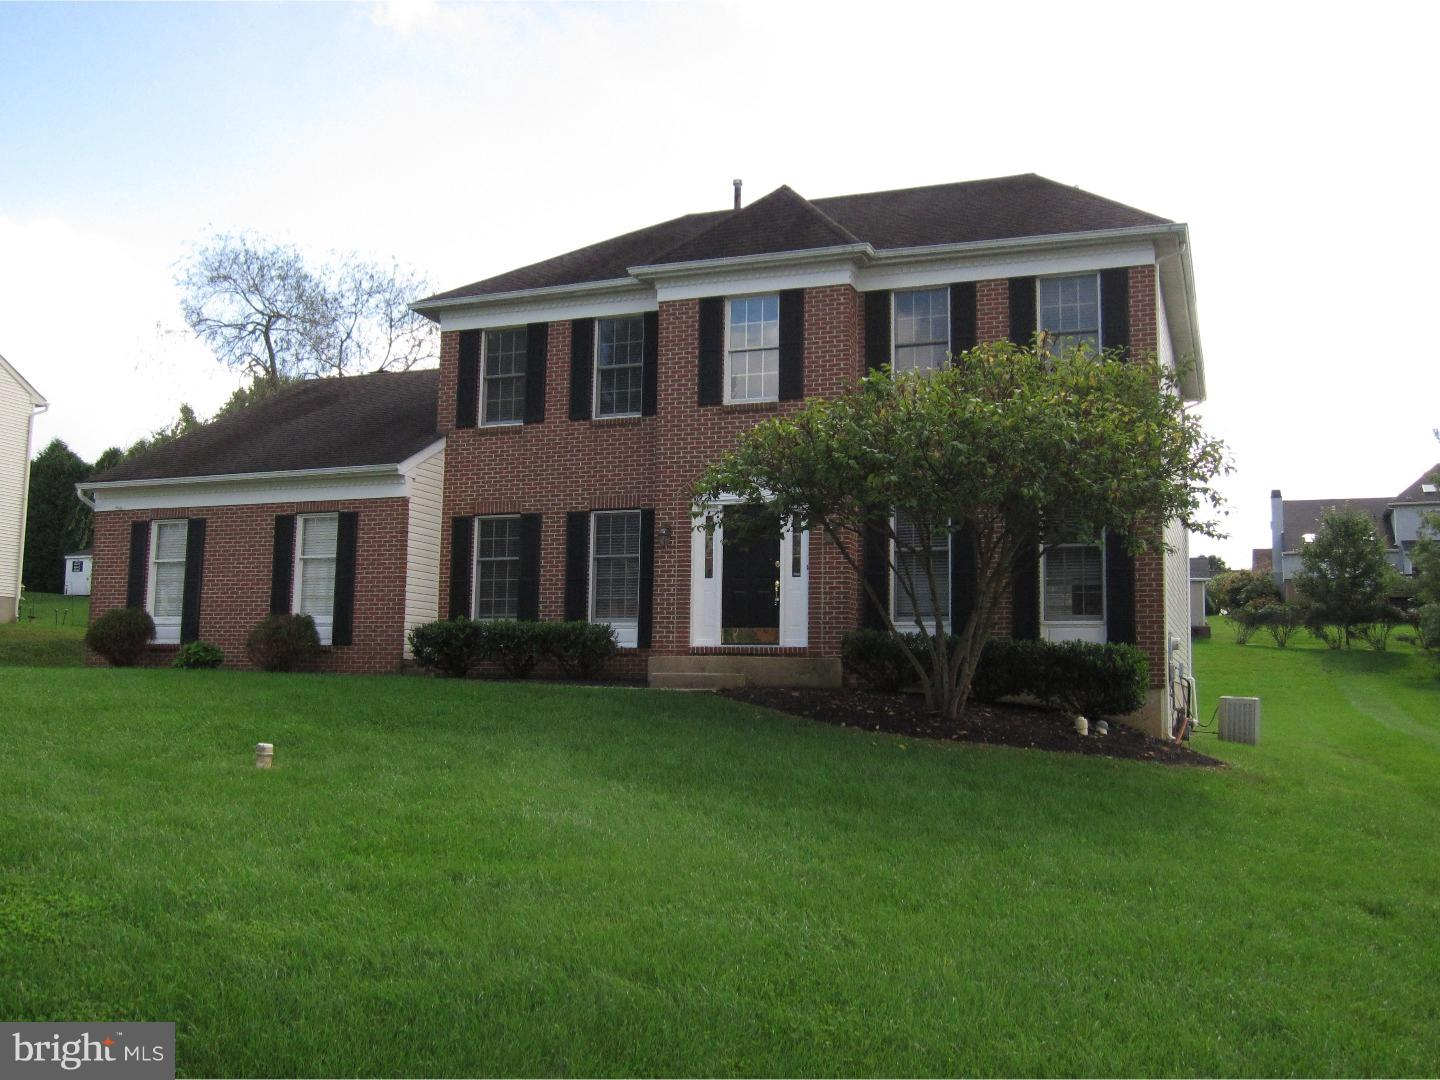 127 Sussex Road West Chester , PA 19380